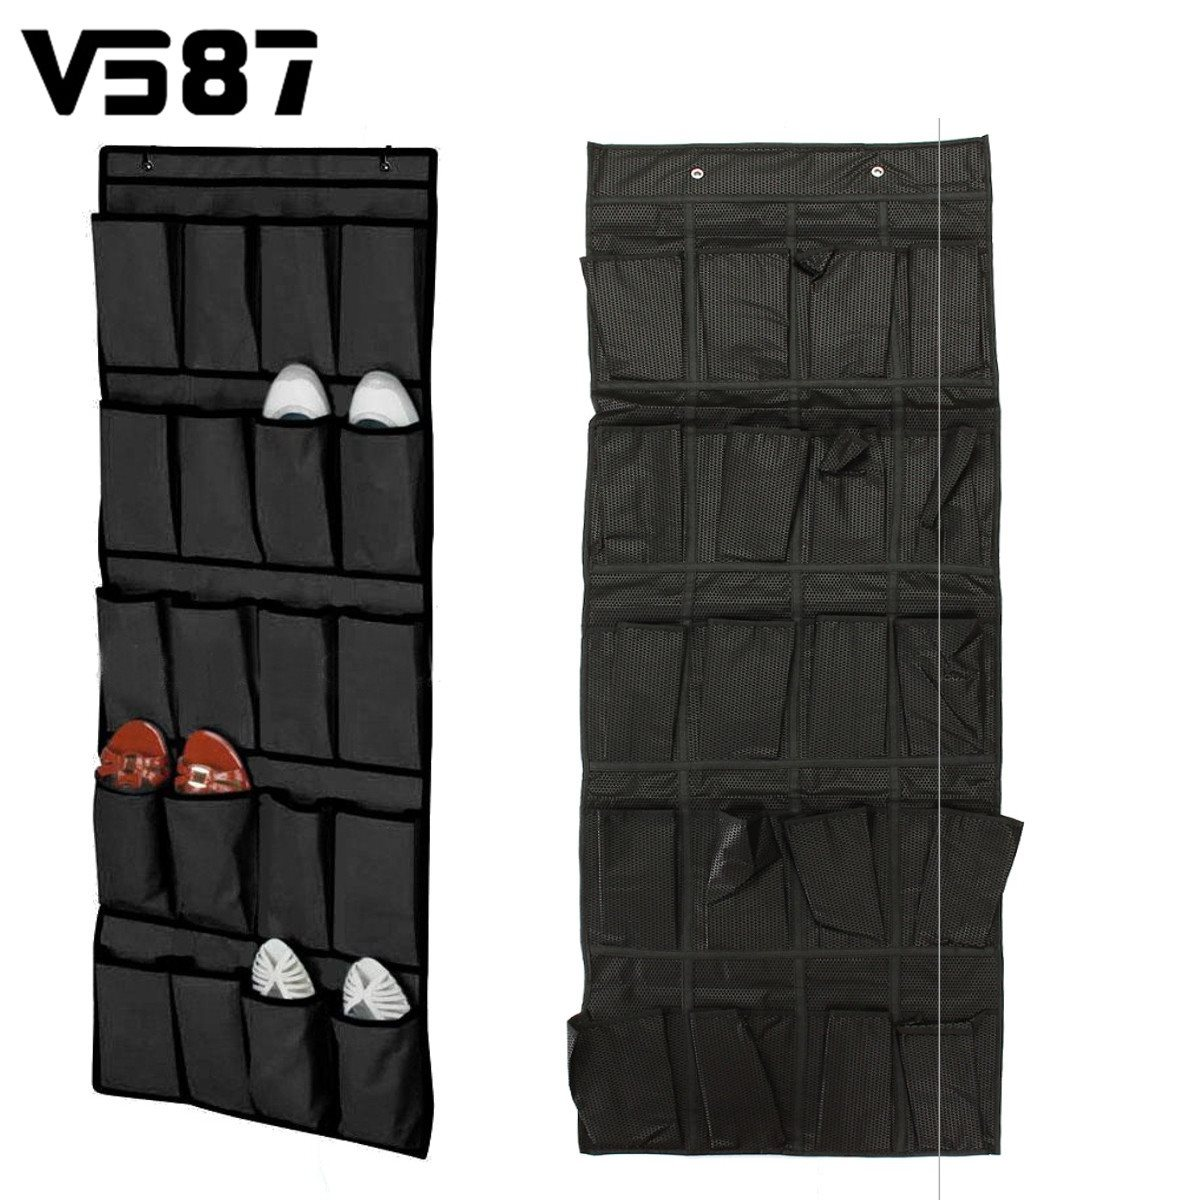 20 Pockets Over The Door Shoes Organizer Rack Sundries Hanging Storage Bag Holder Household Storage Tool Accessories Space Saver(China (Mainland))